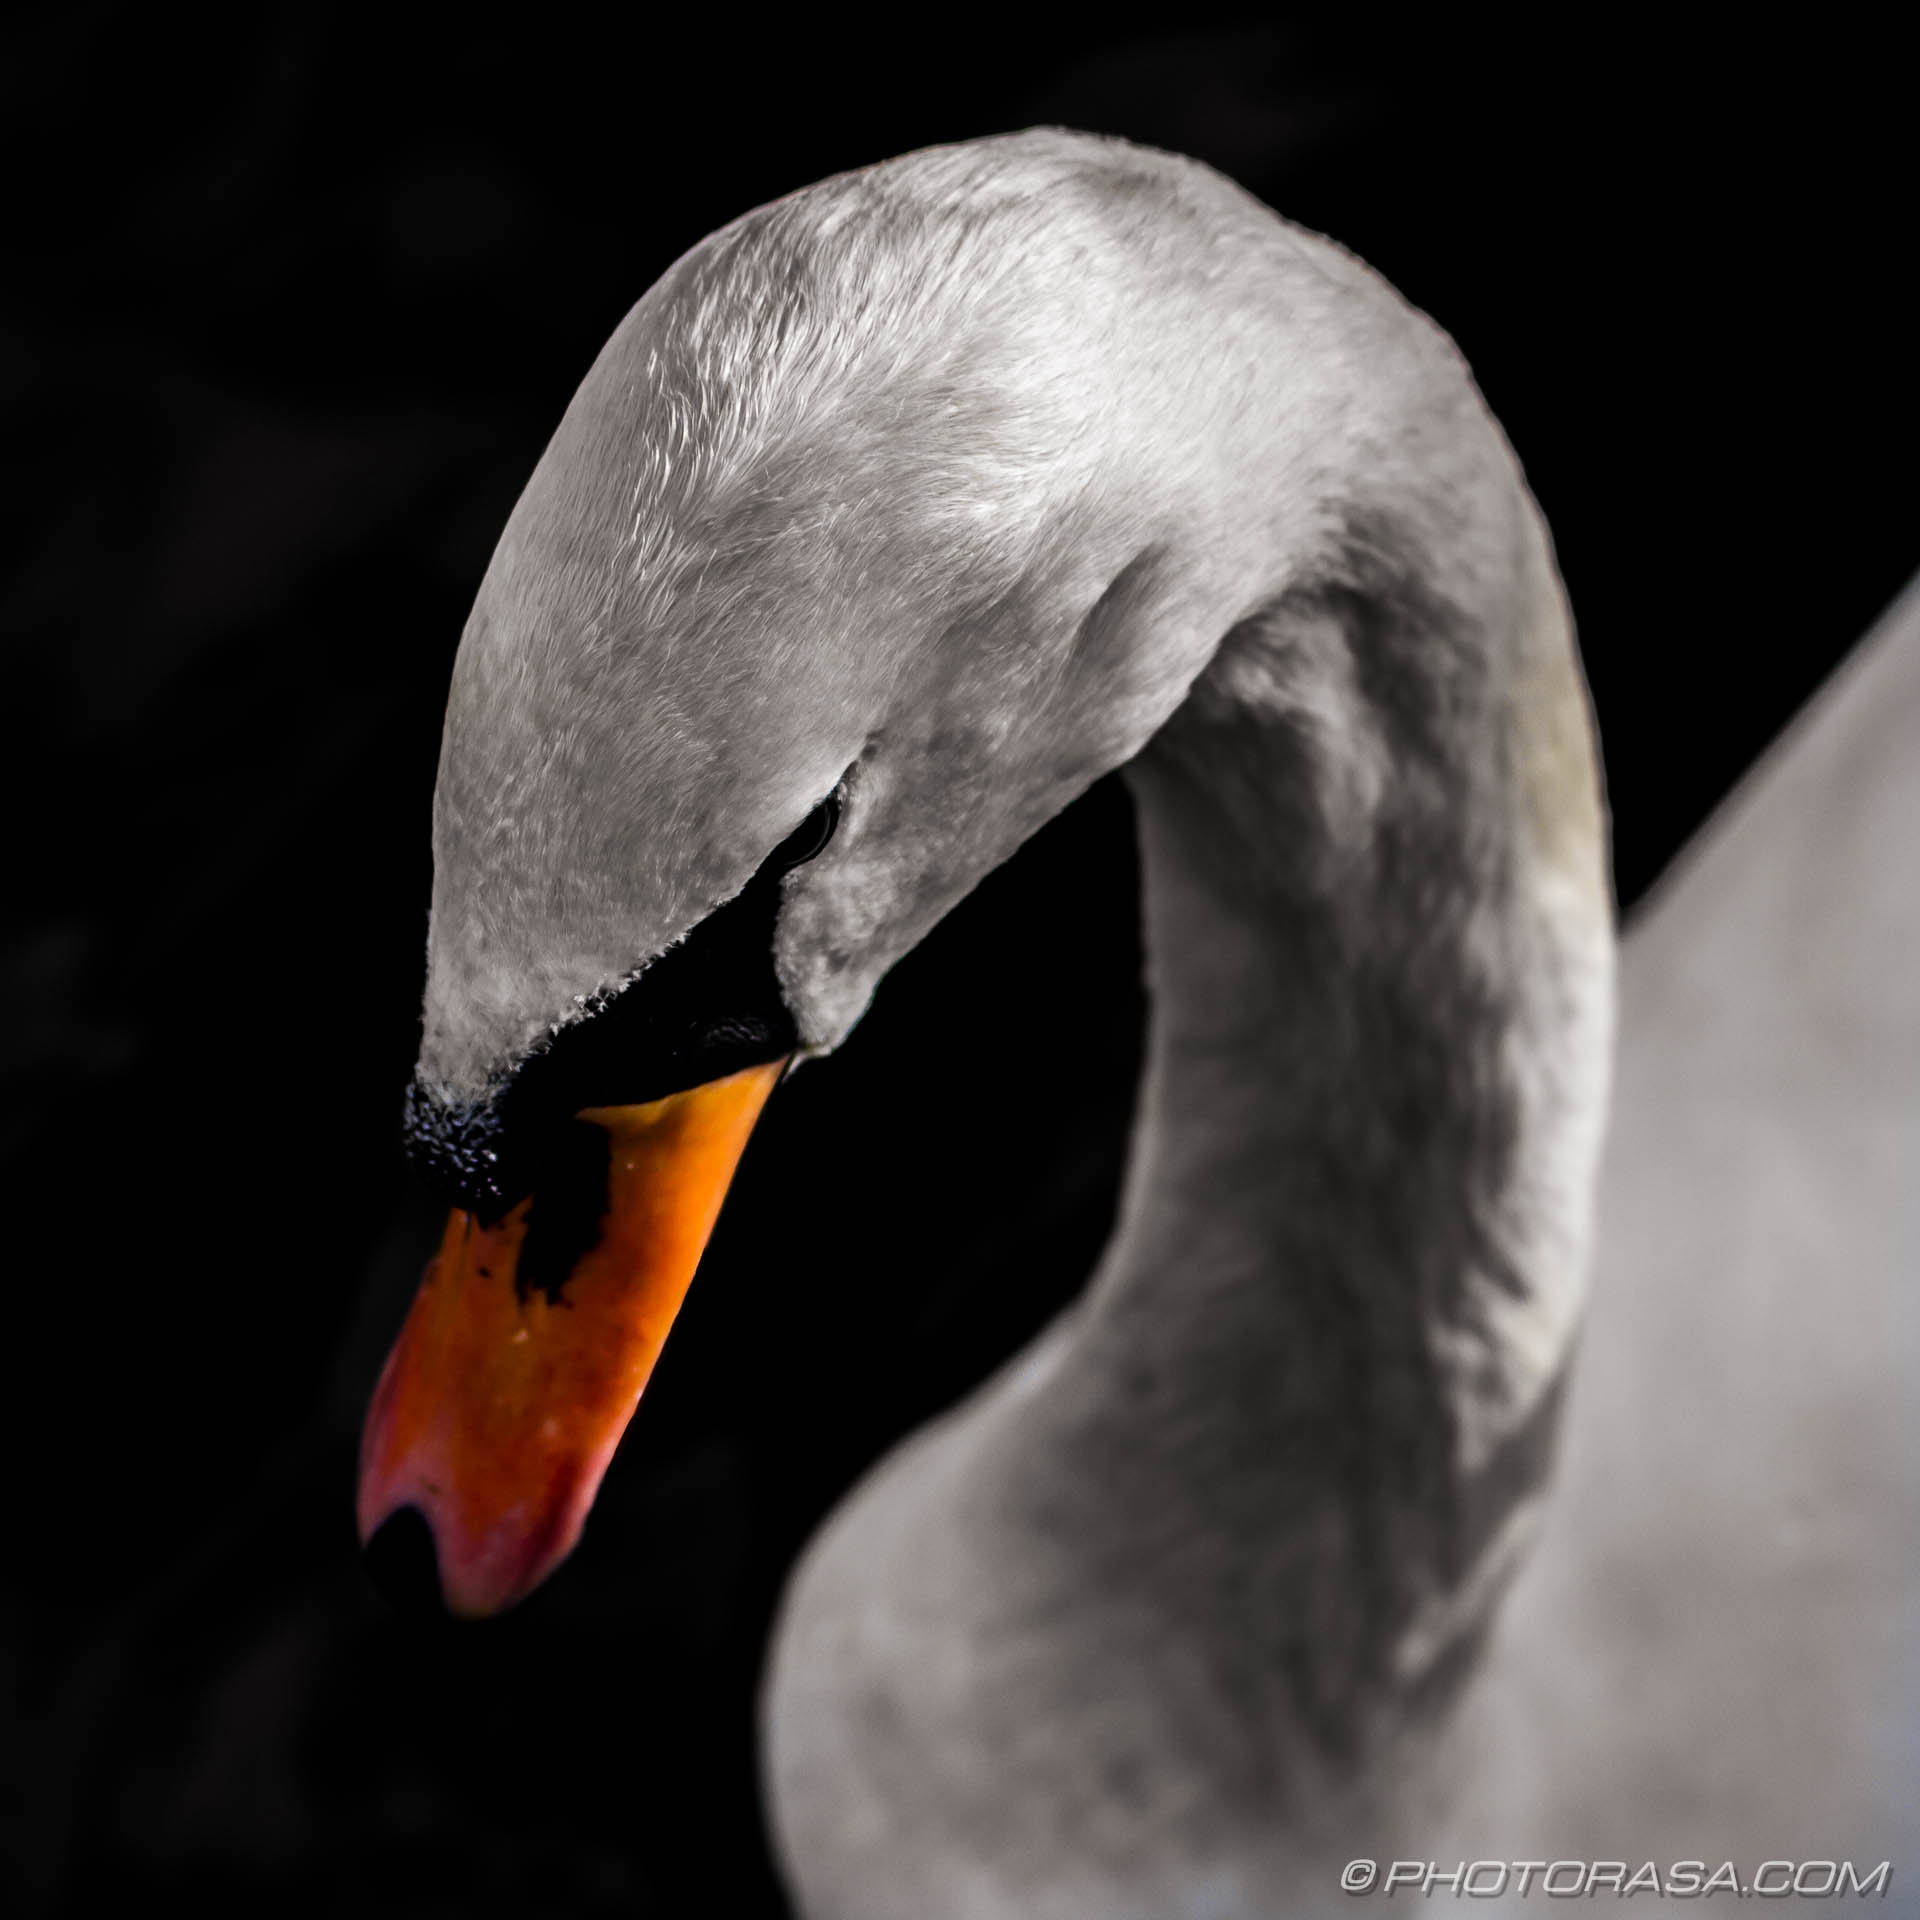 http://photorasa.com/art-swans/swan-head-from-above/